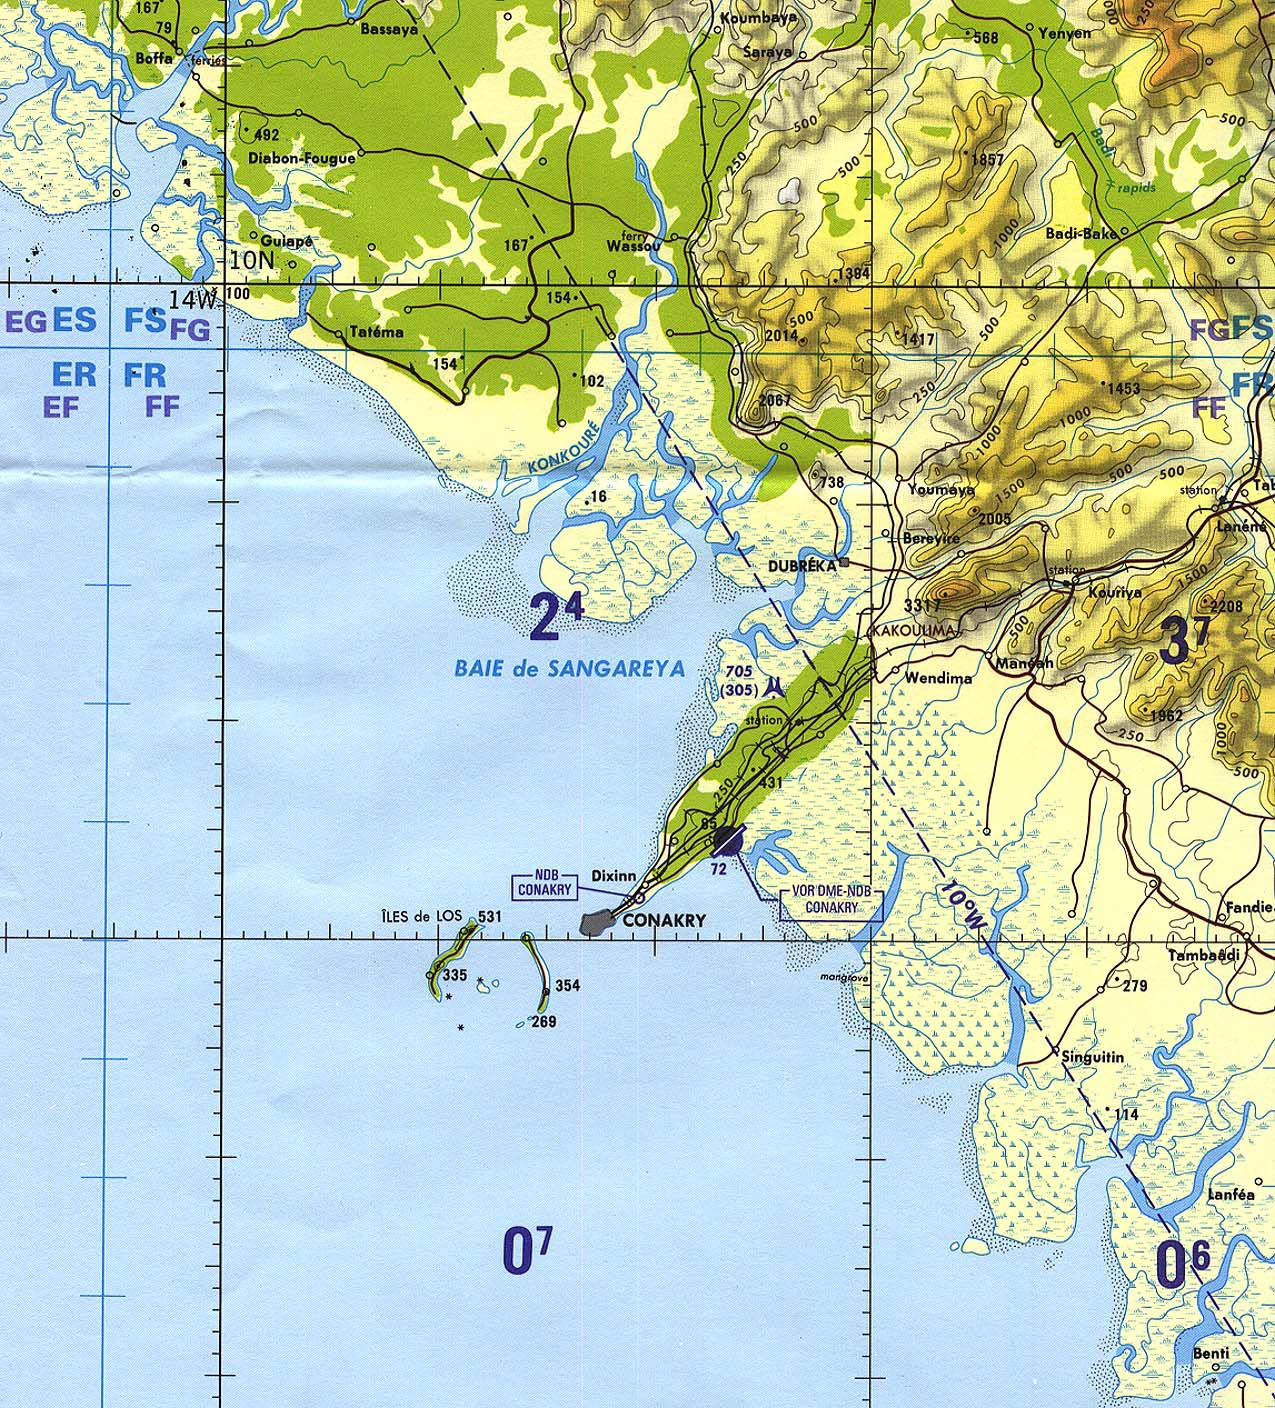 U S Army Map Service Corps Of Engineers 1964 1 2mb Conakry Area Tactical Pilotage Chart 1 500 000